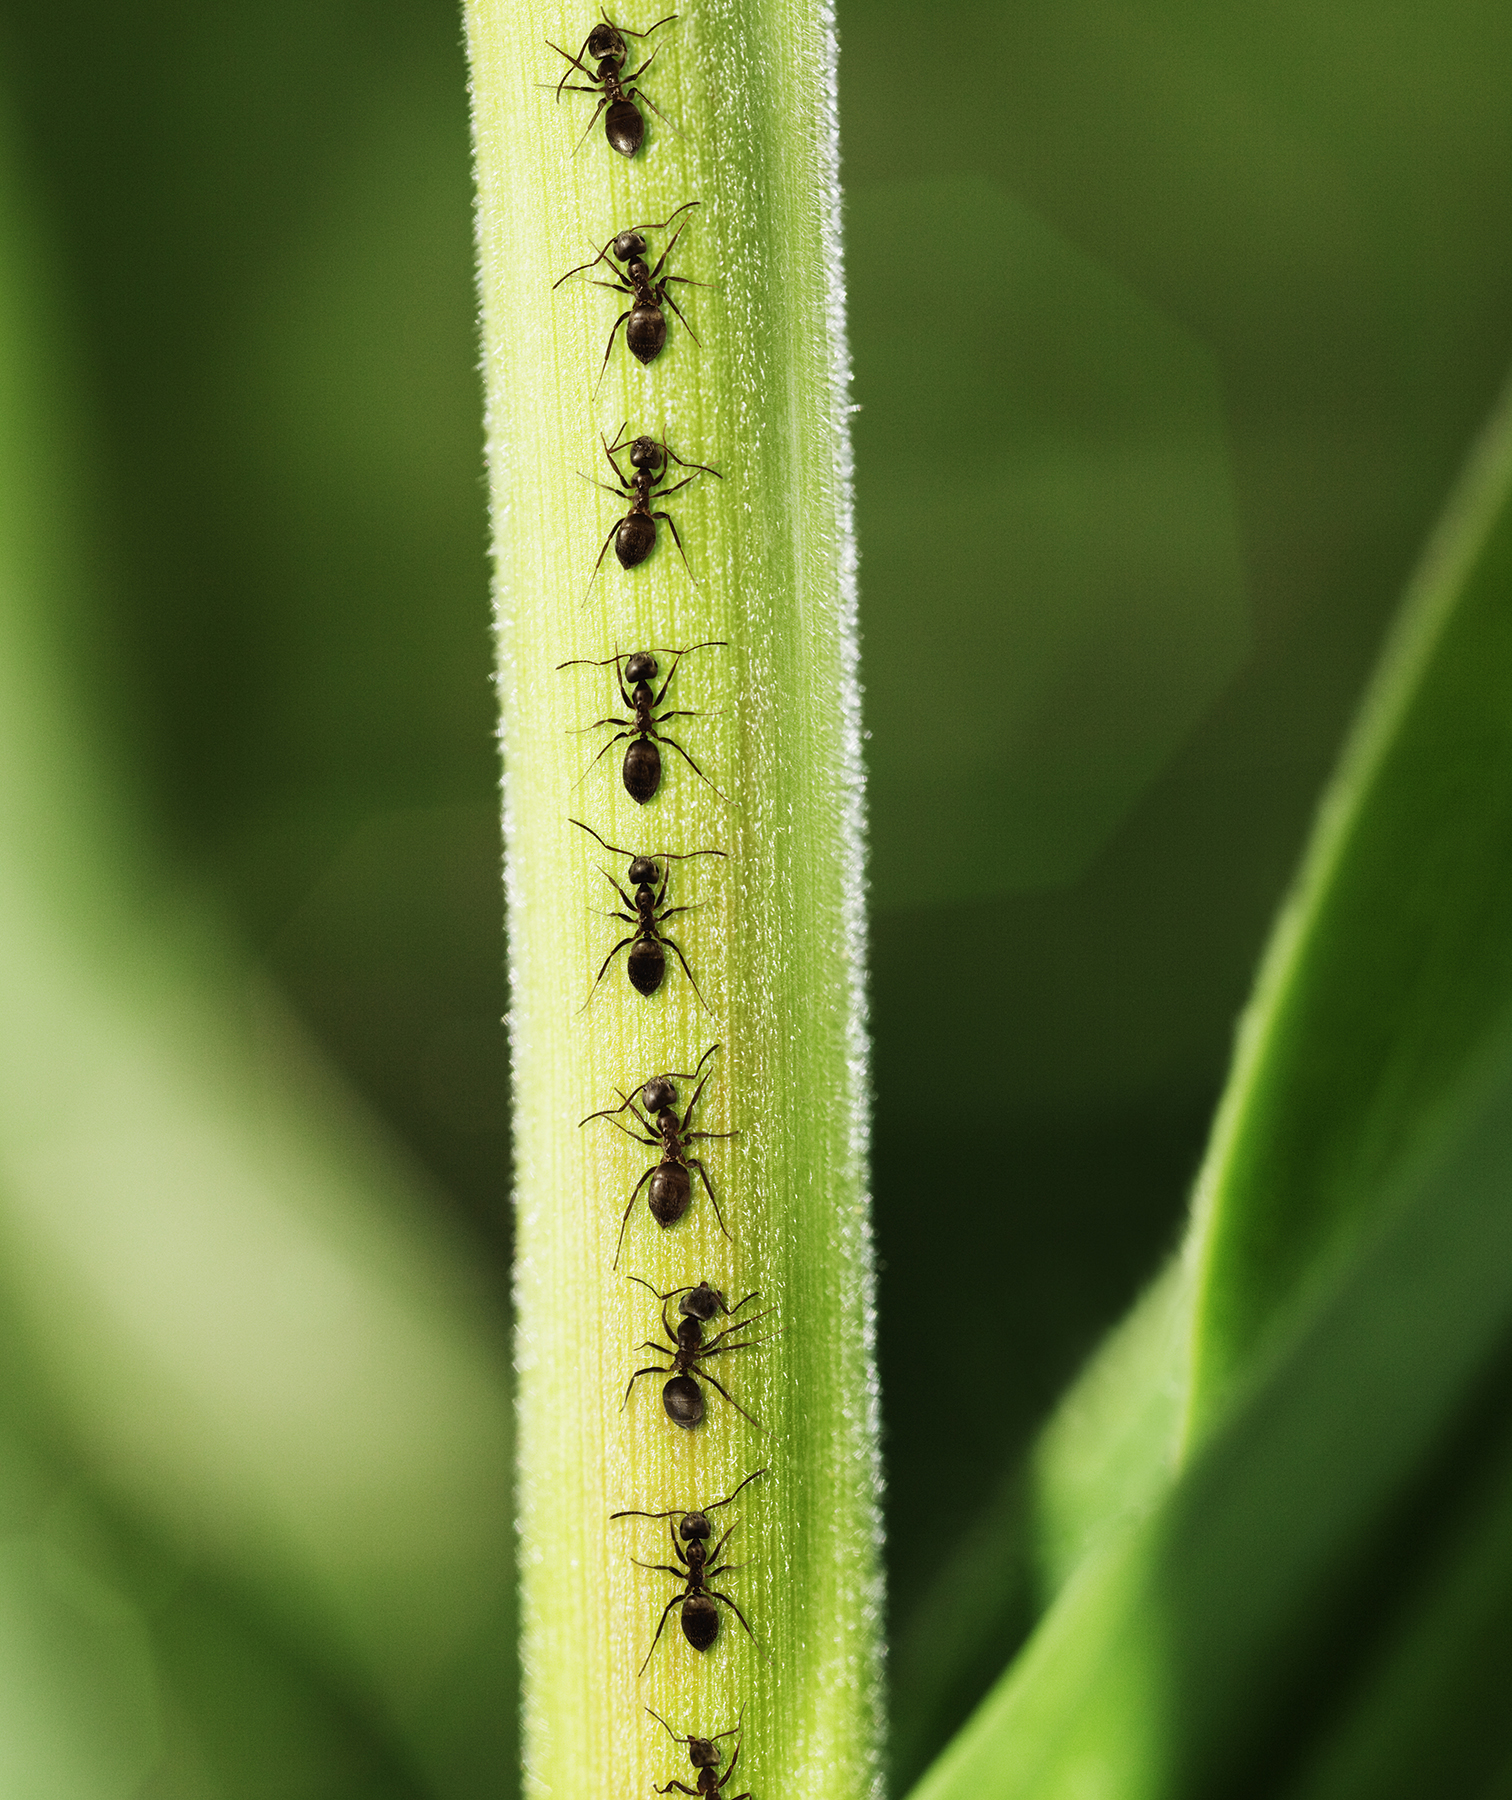 Ants crawling up plant stem